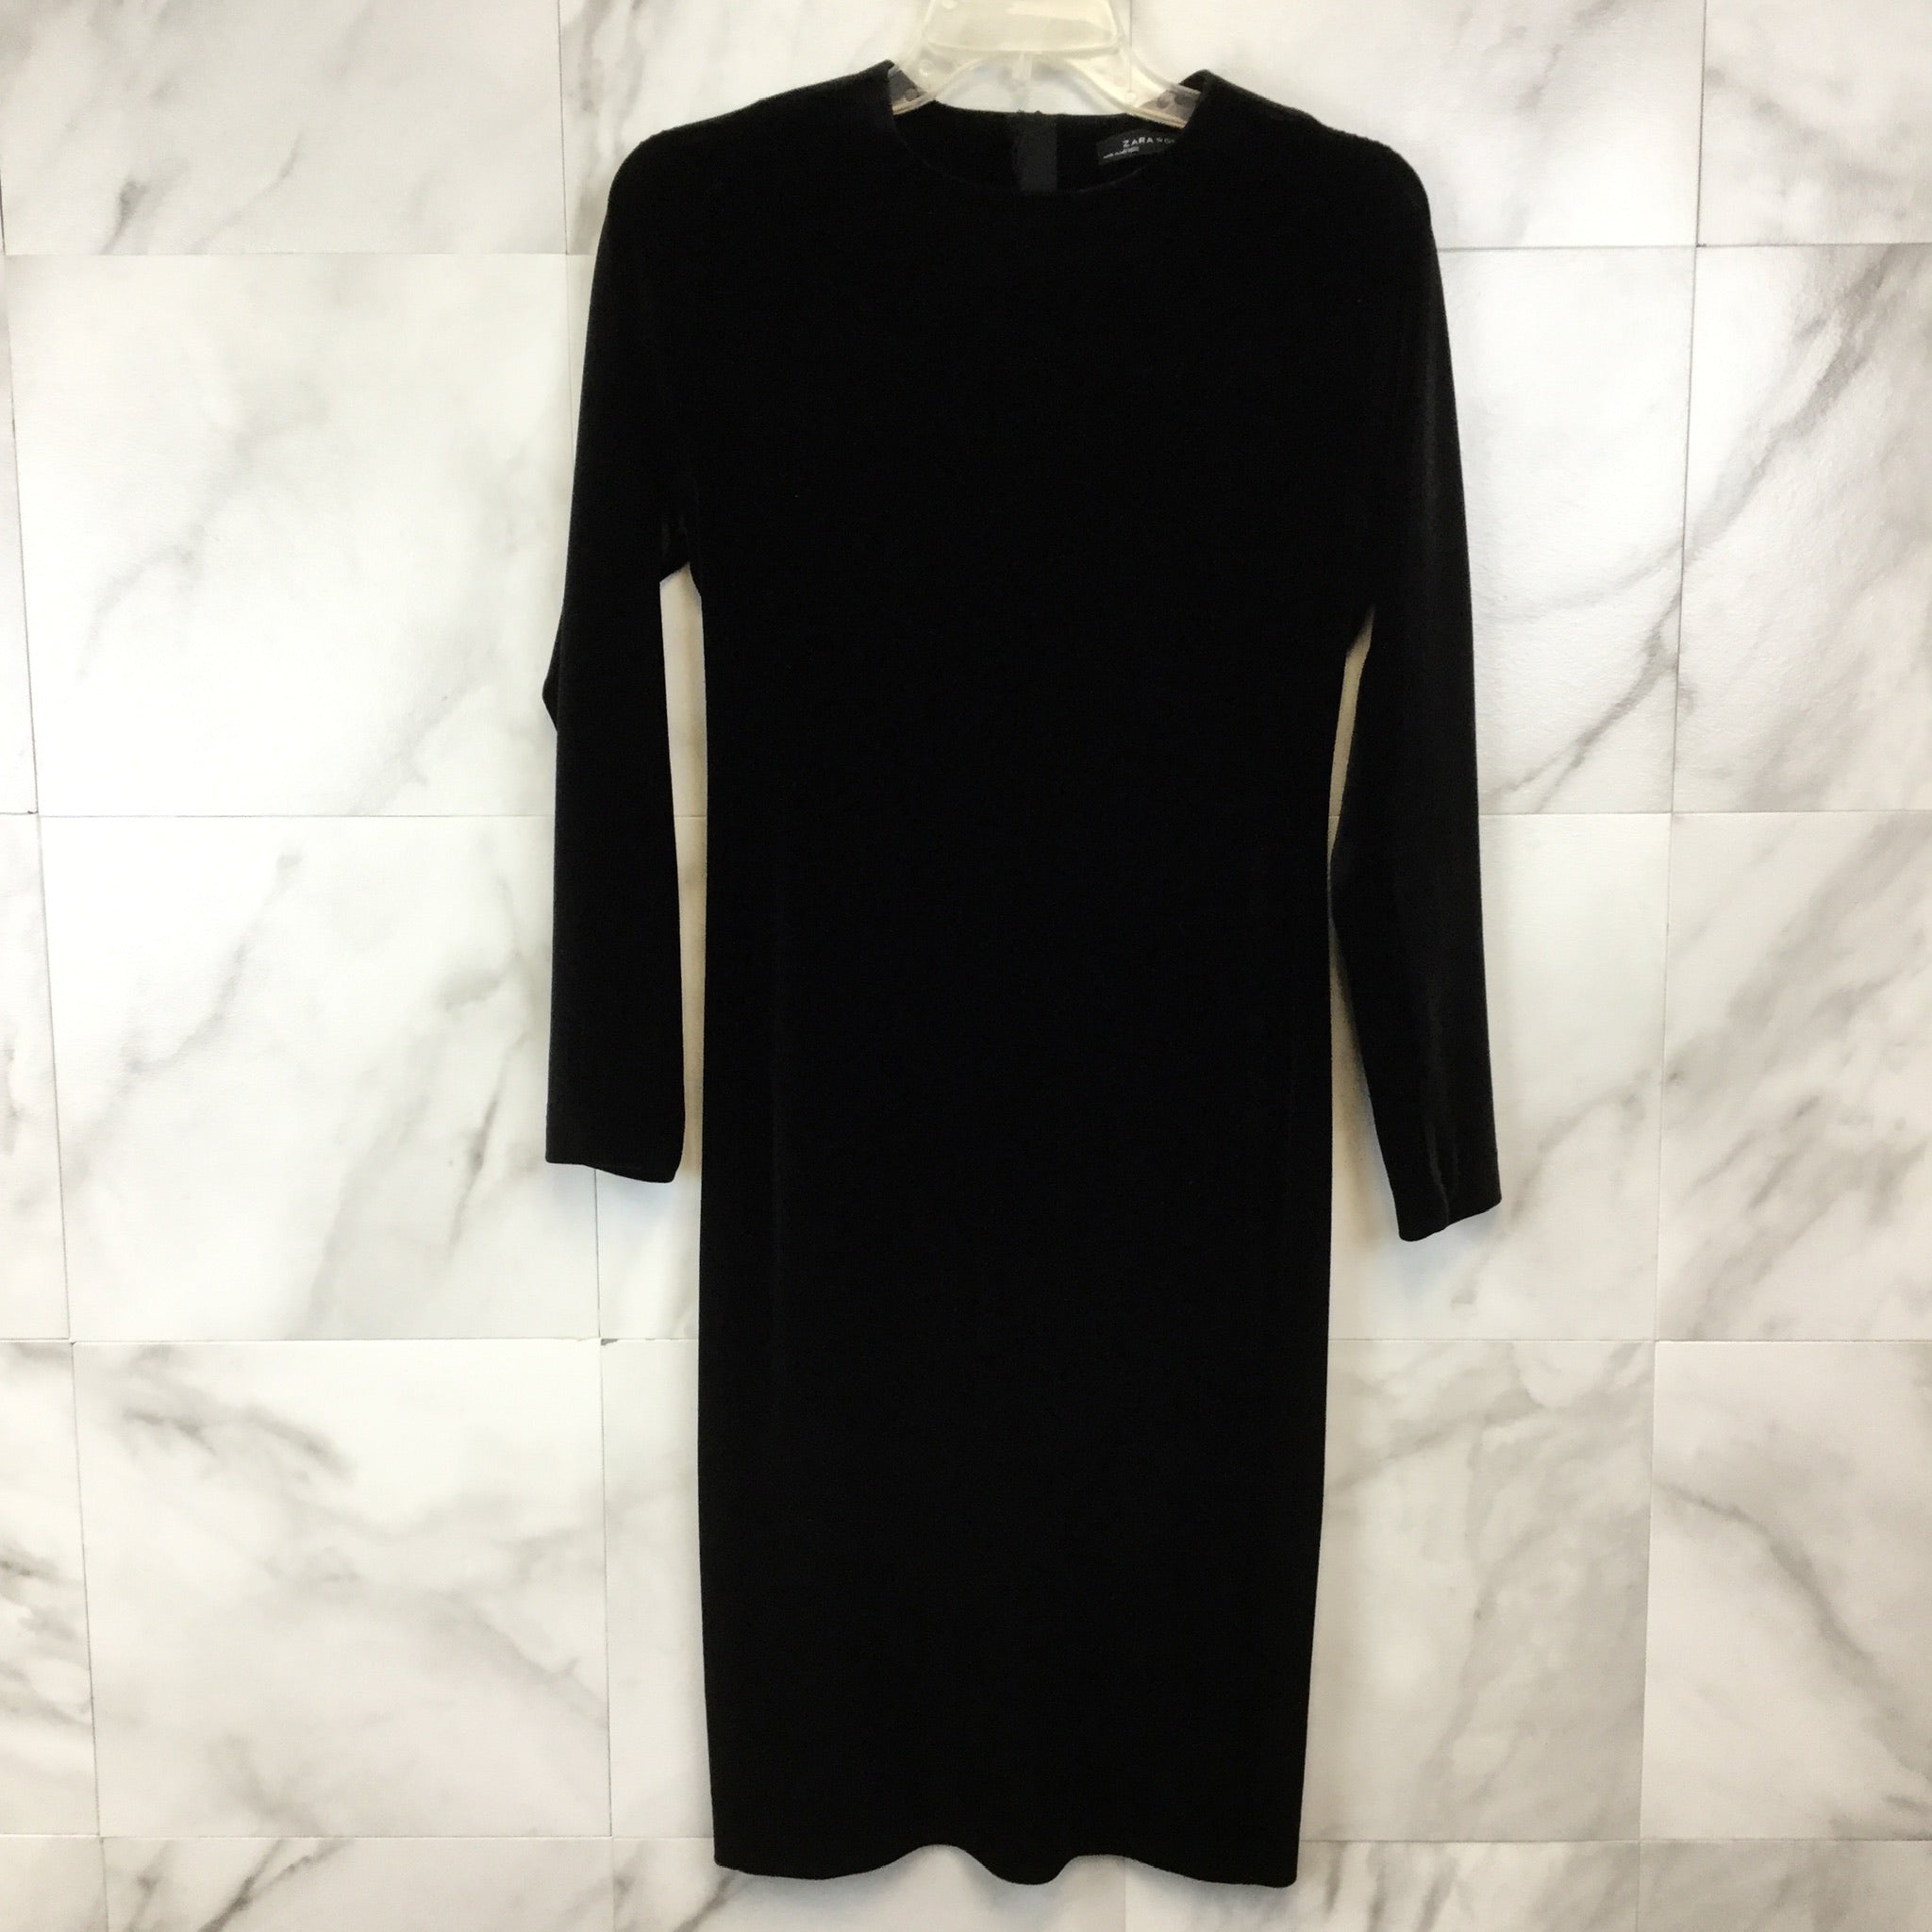 Zara Velvet Midi Dress - size M